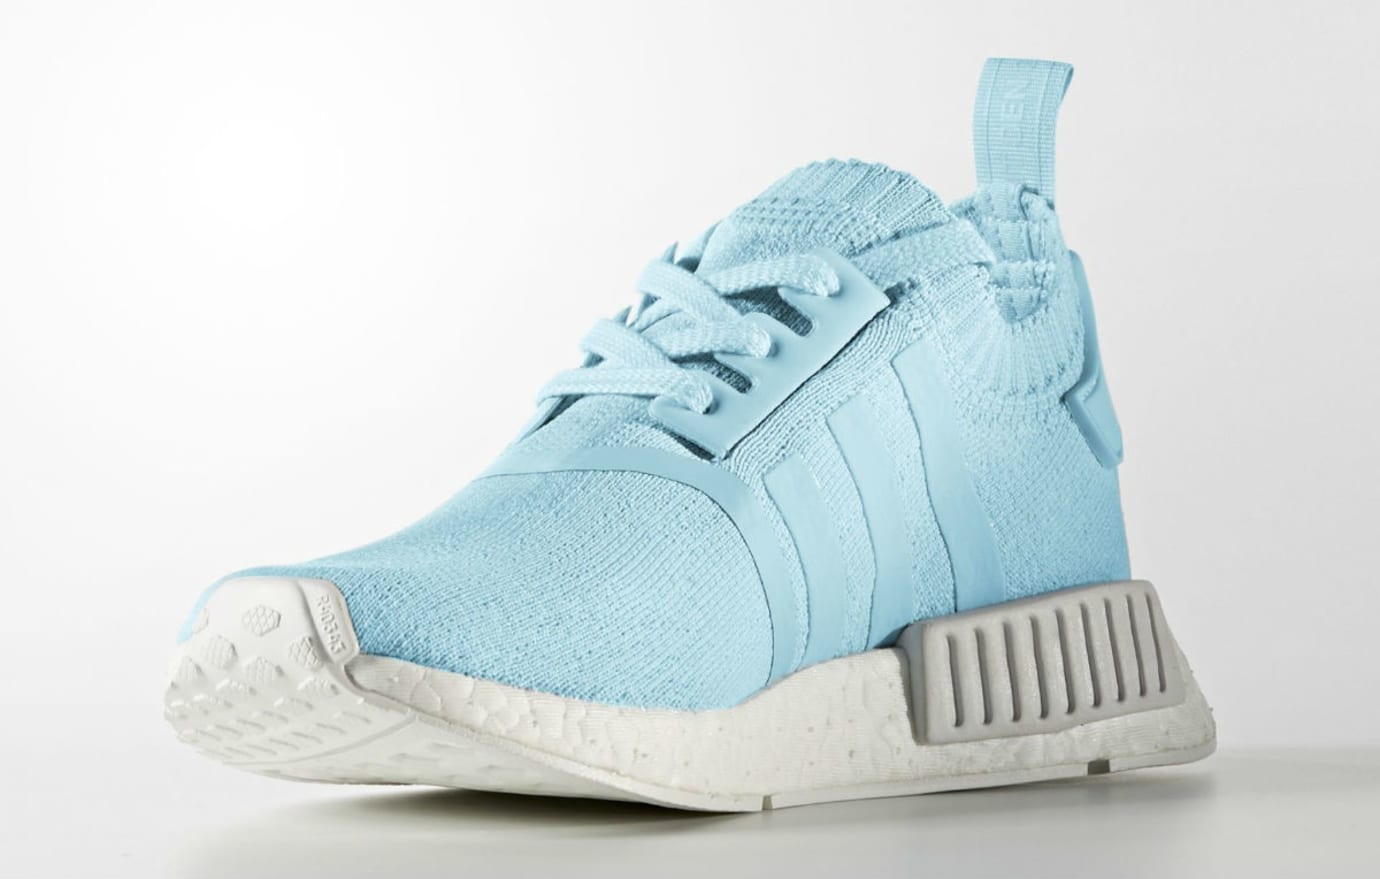 Adidas NMD R1 Primeknit Ice Blue Release Date Medial BY8763